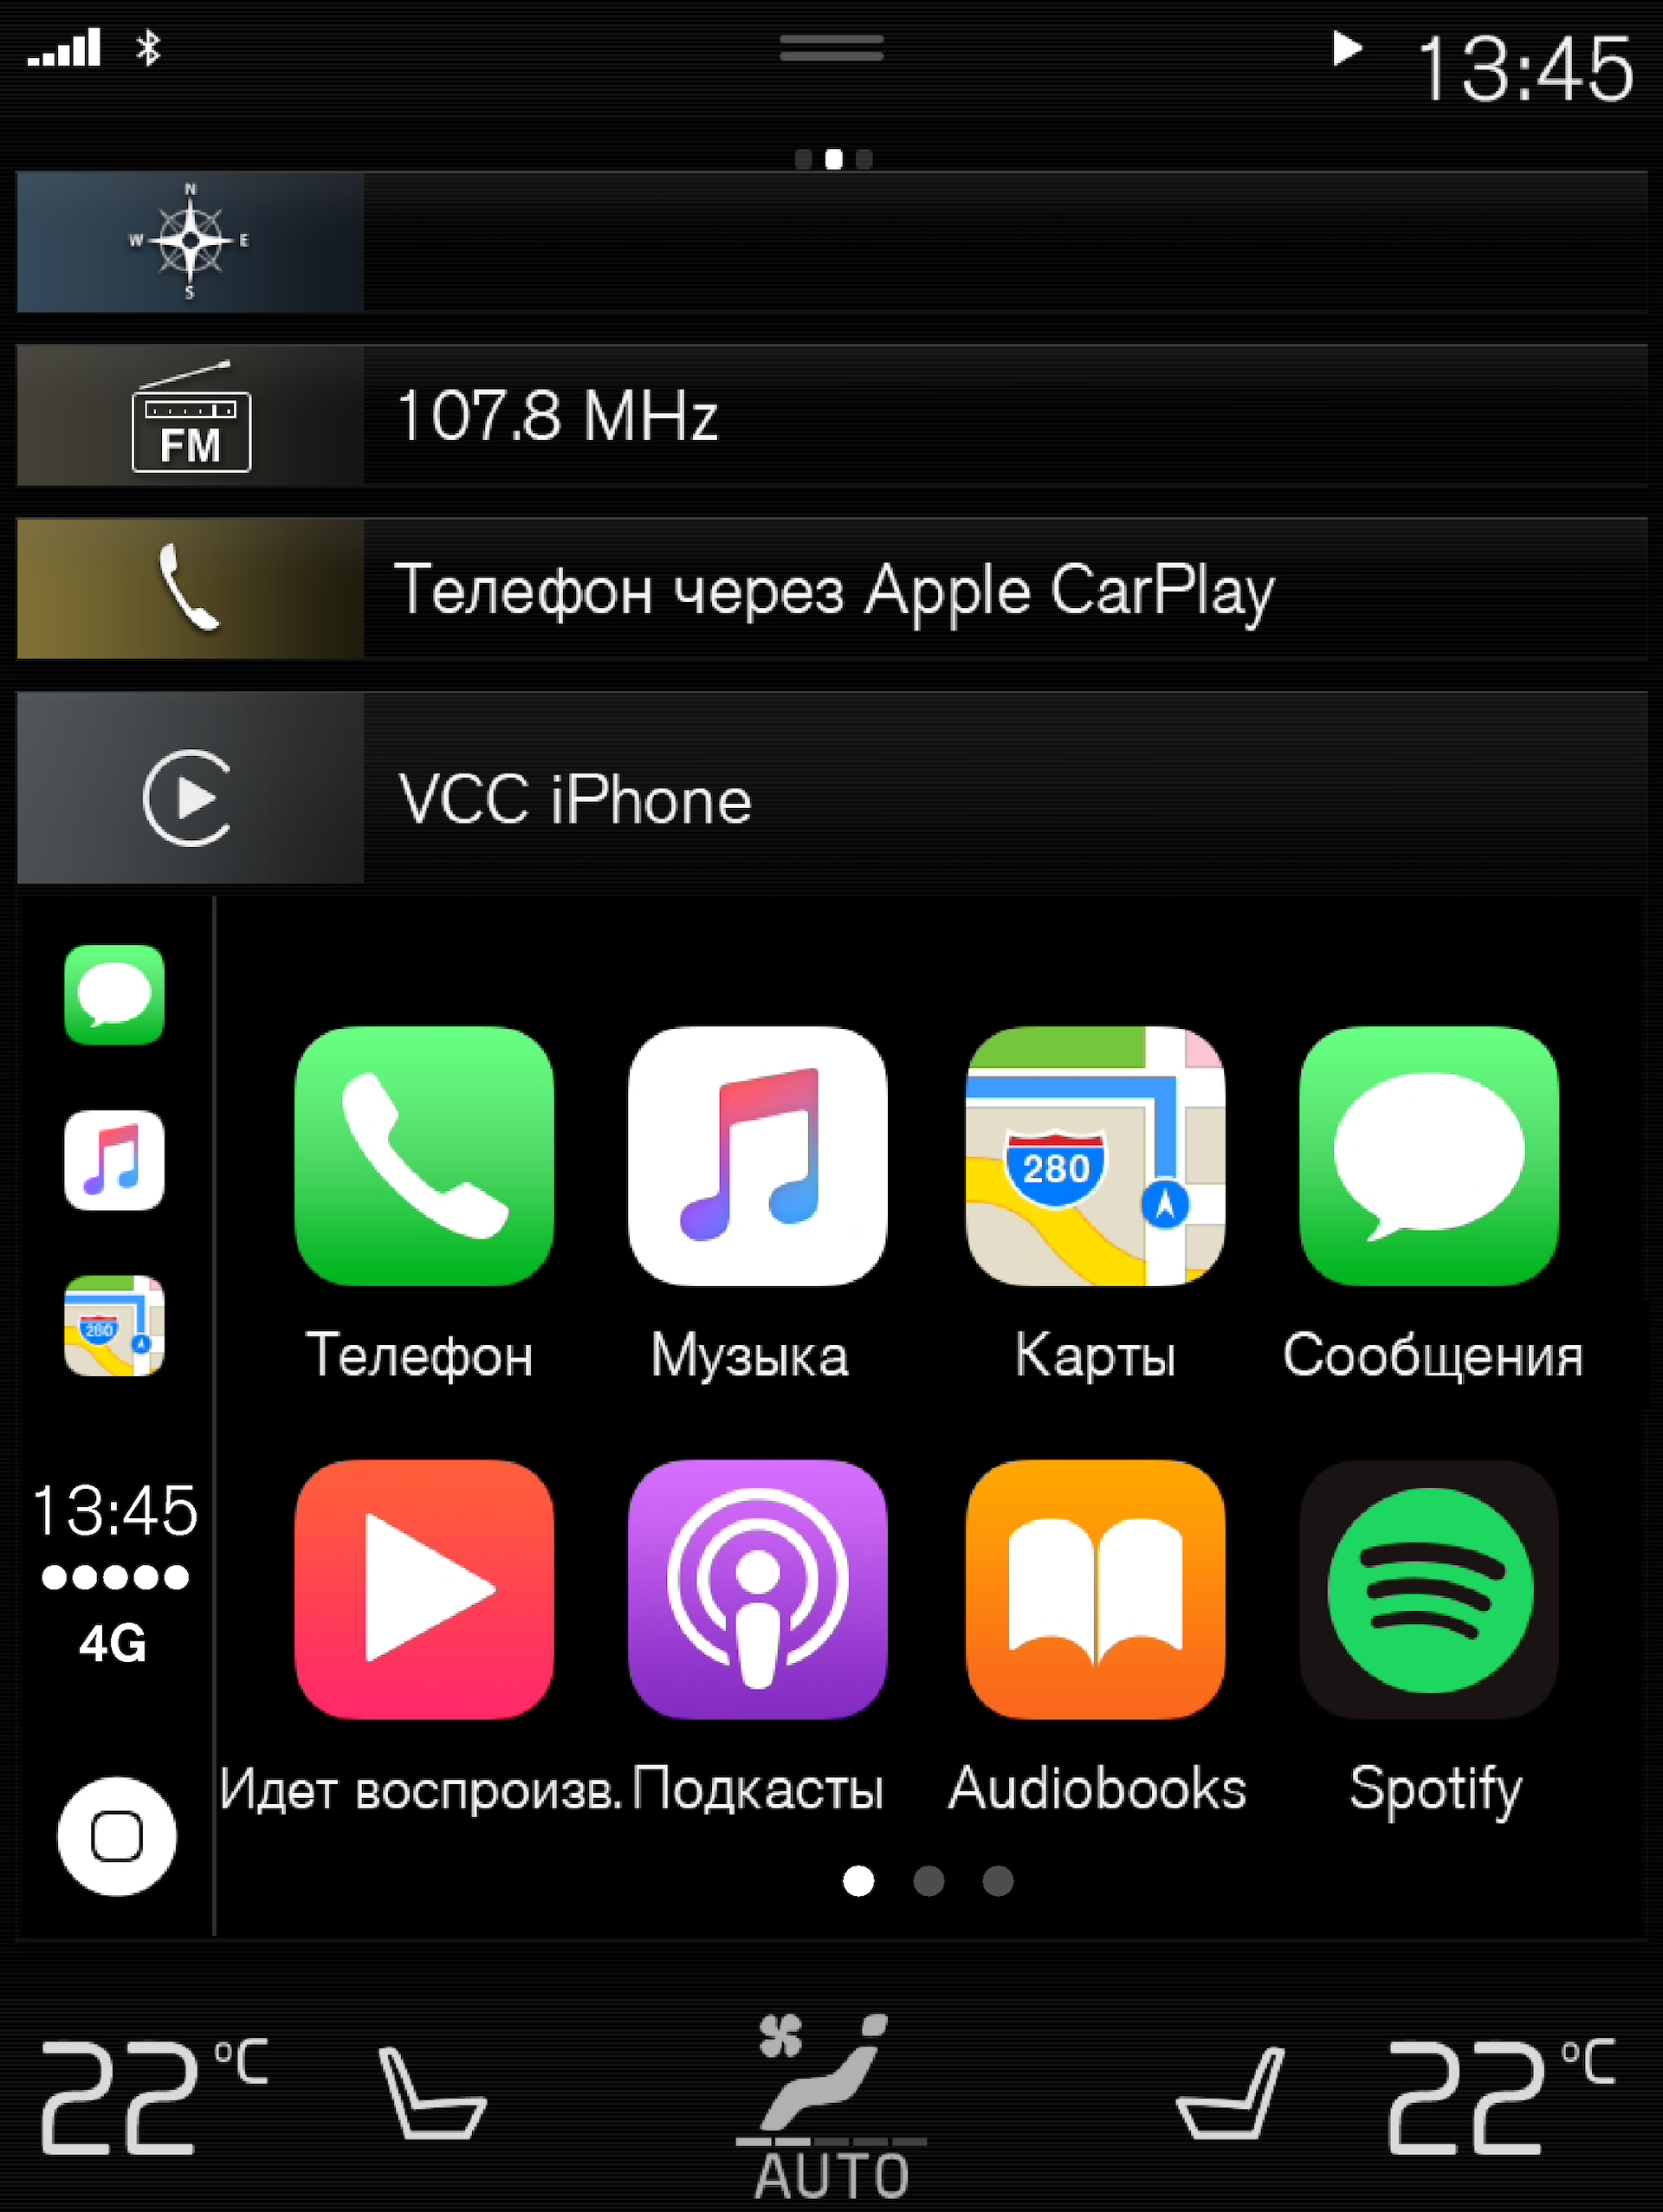 15w49 - Support site - Apple CarPlay apps view - RUS